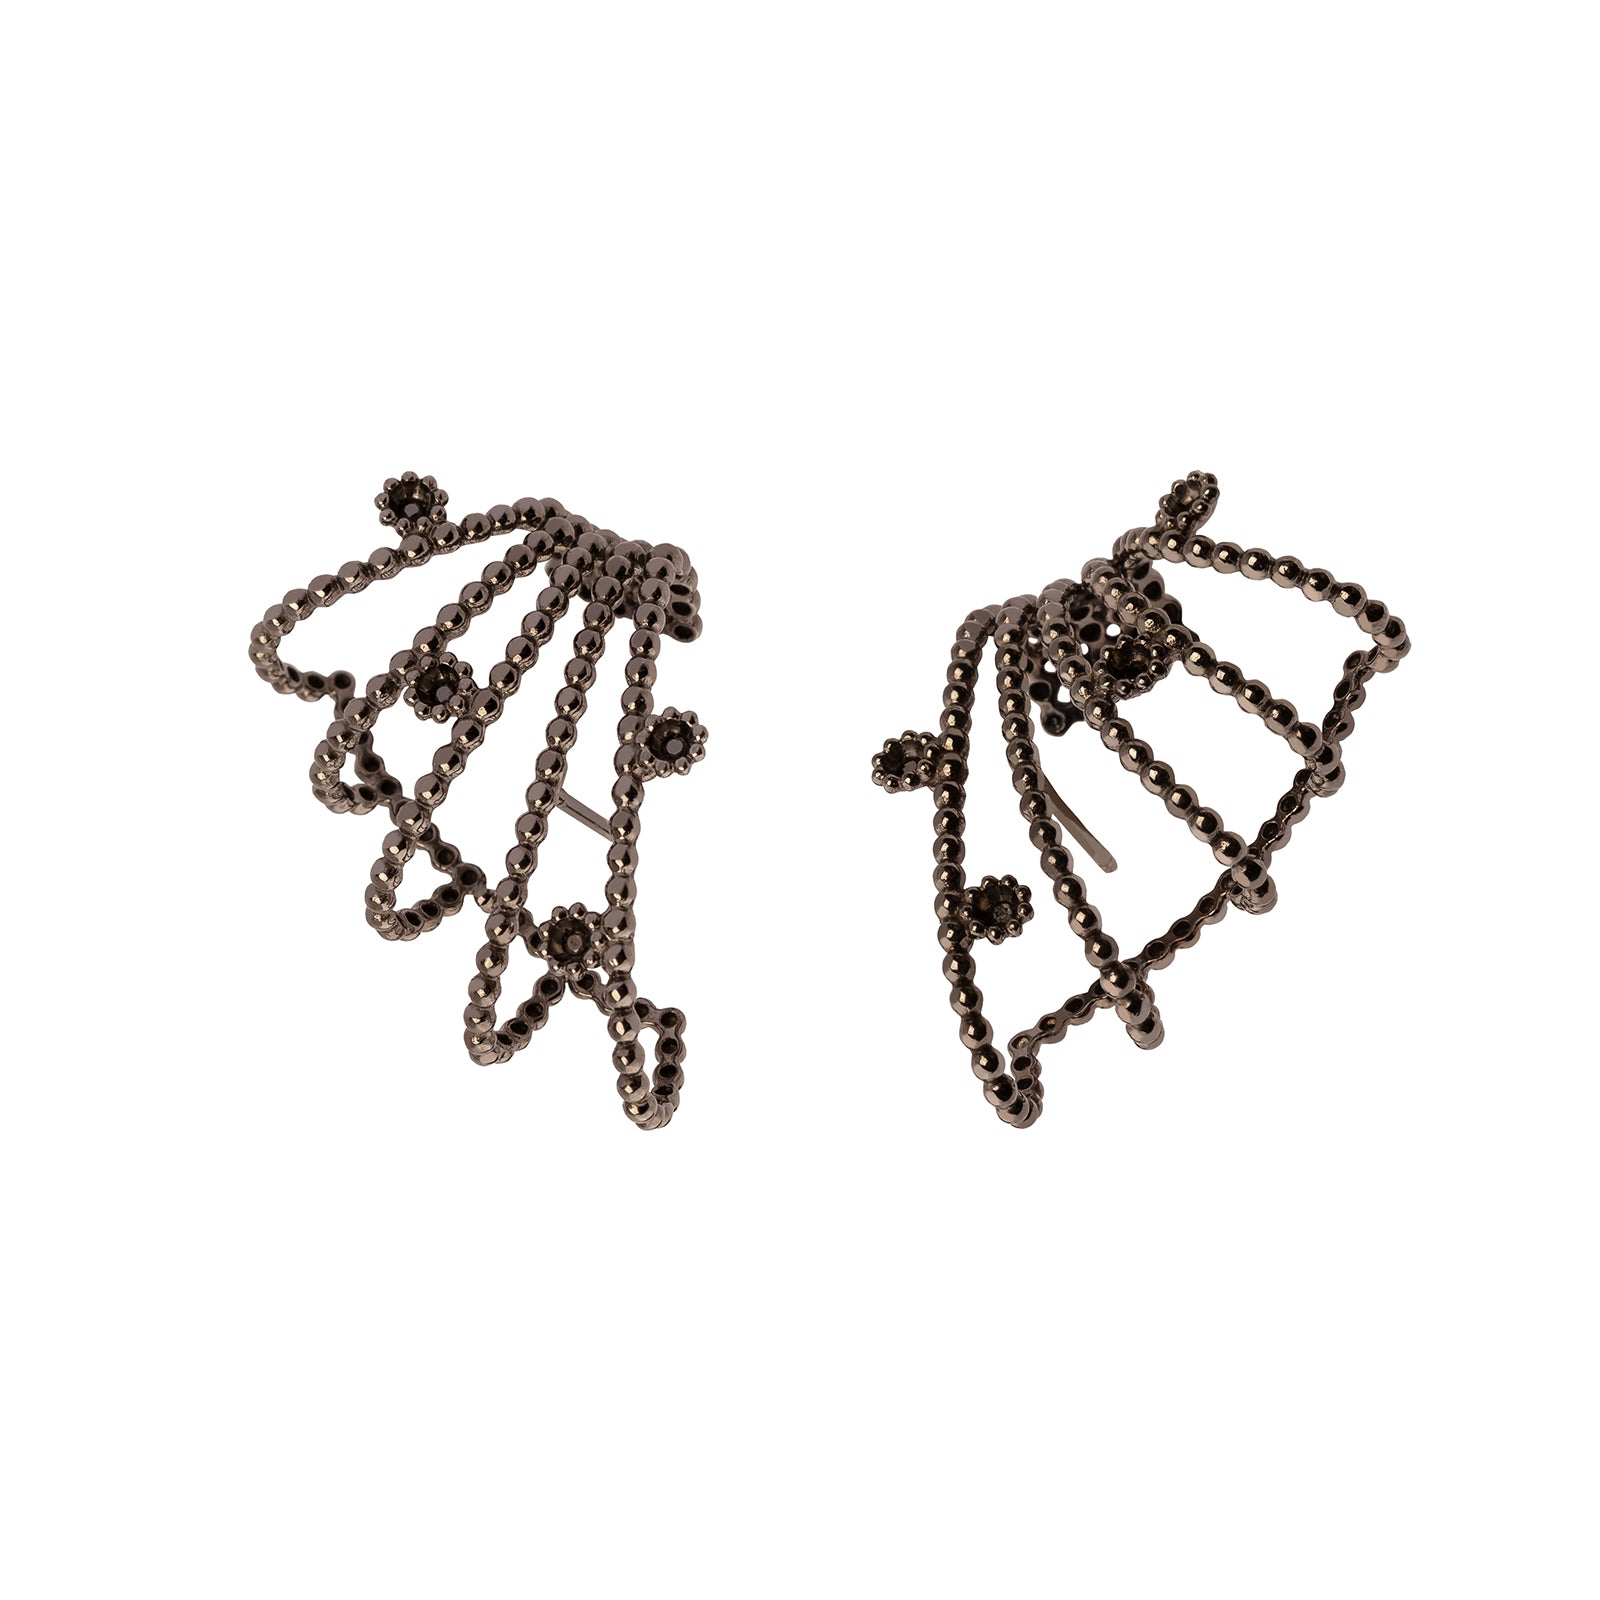 Carla Amorim Vapor Earcuff Earrings - Black - Earrings - Broken English Jewelry